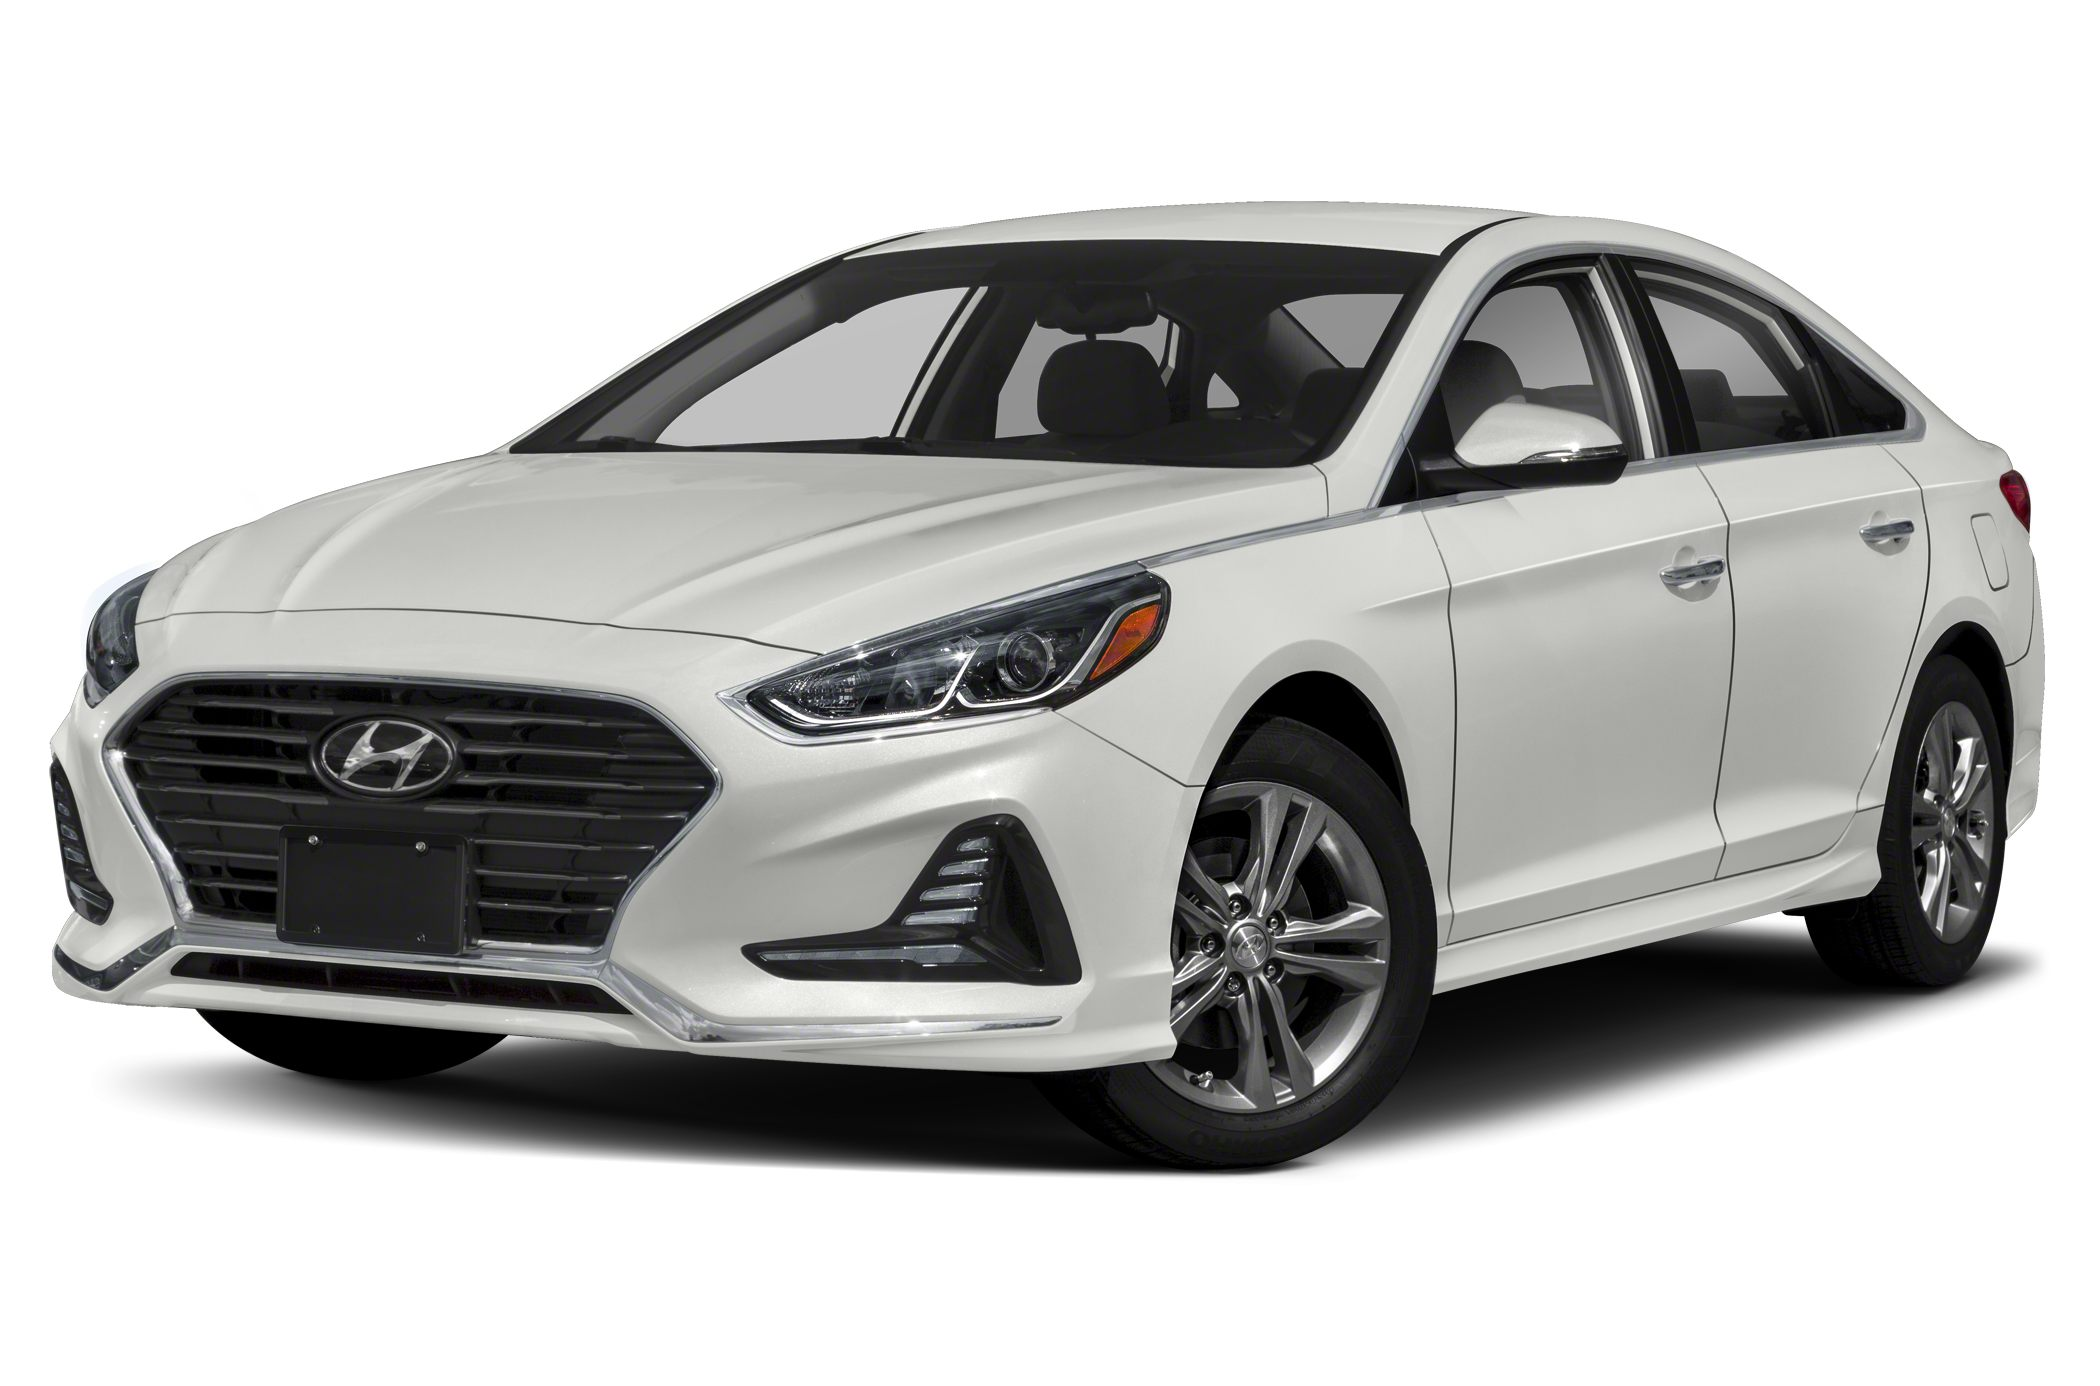 Hyundai Canada Incentives for the new 2021 Hyundai Sonata and Sonata Hybrid in Milton, Toronto, and the GTA